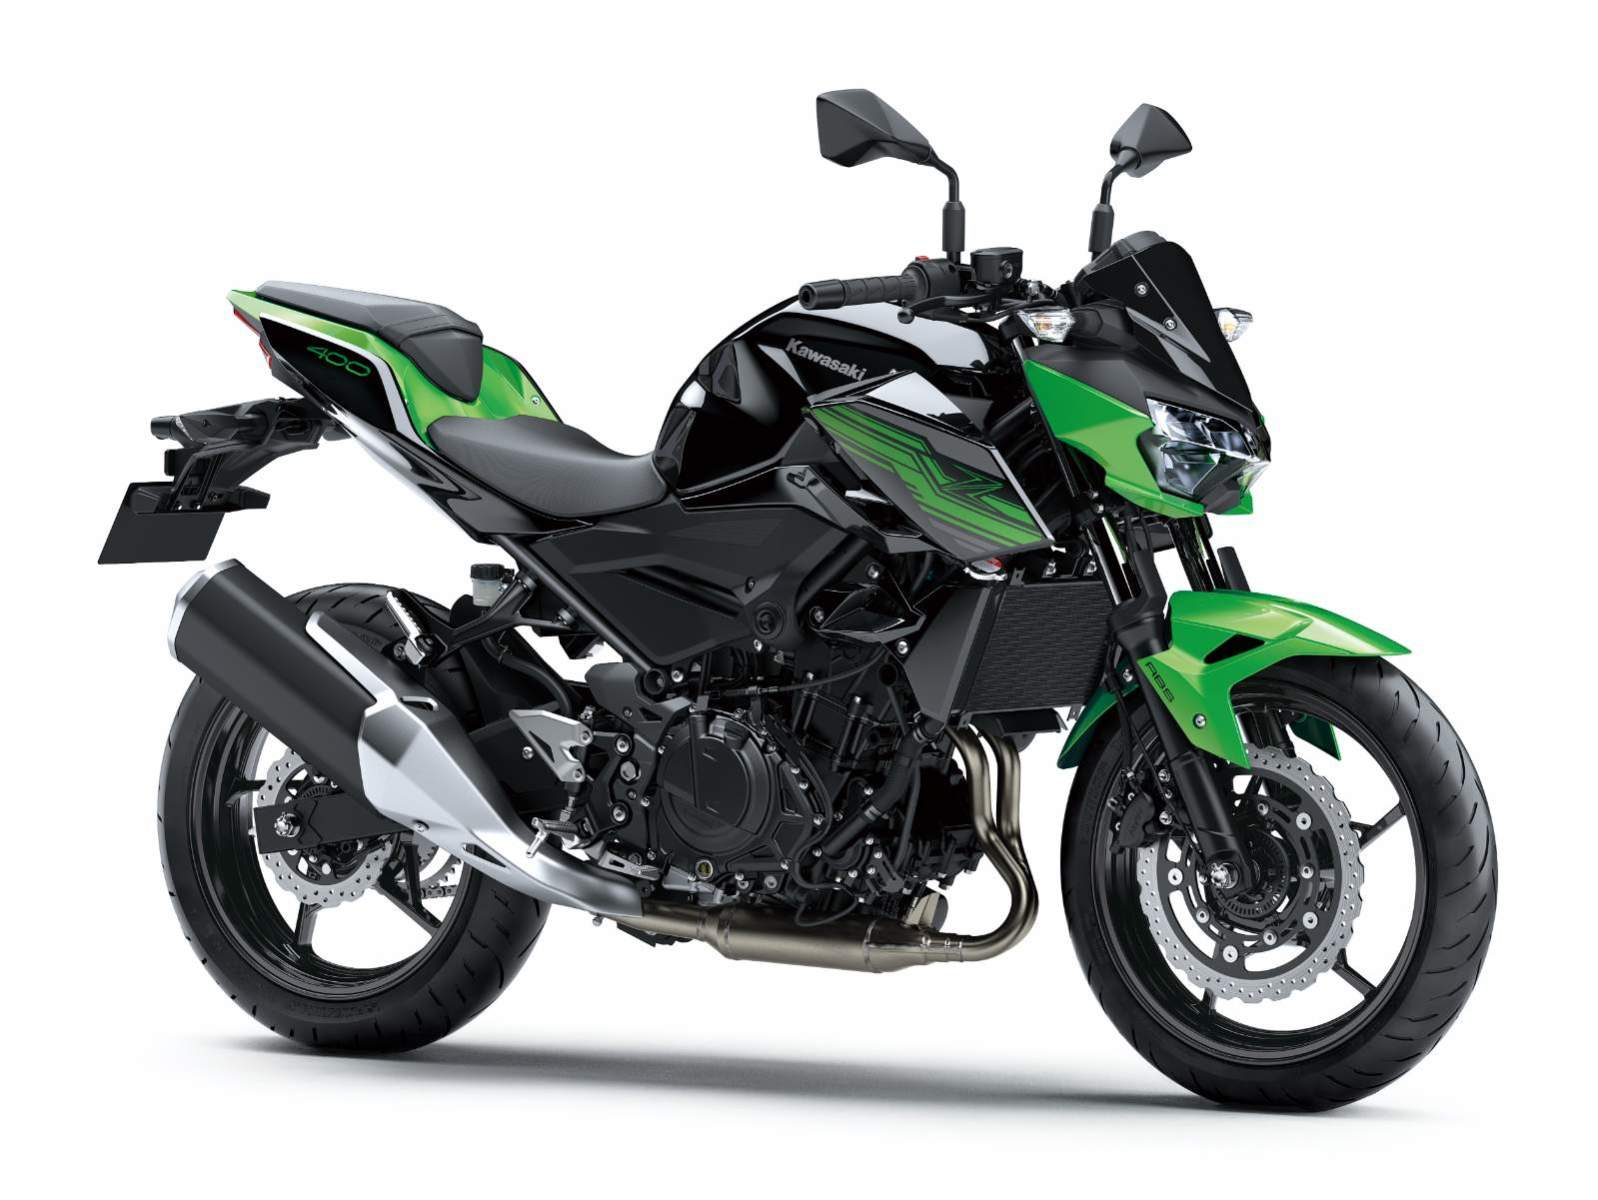 KAWASAKI Z400 MY20 Metallic Matte Graphite Gray / Metallic Spark Black